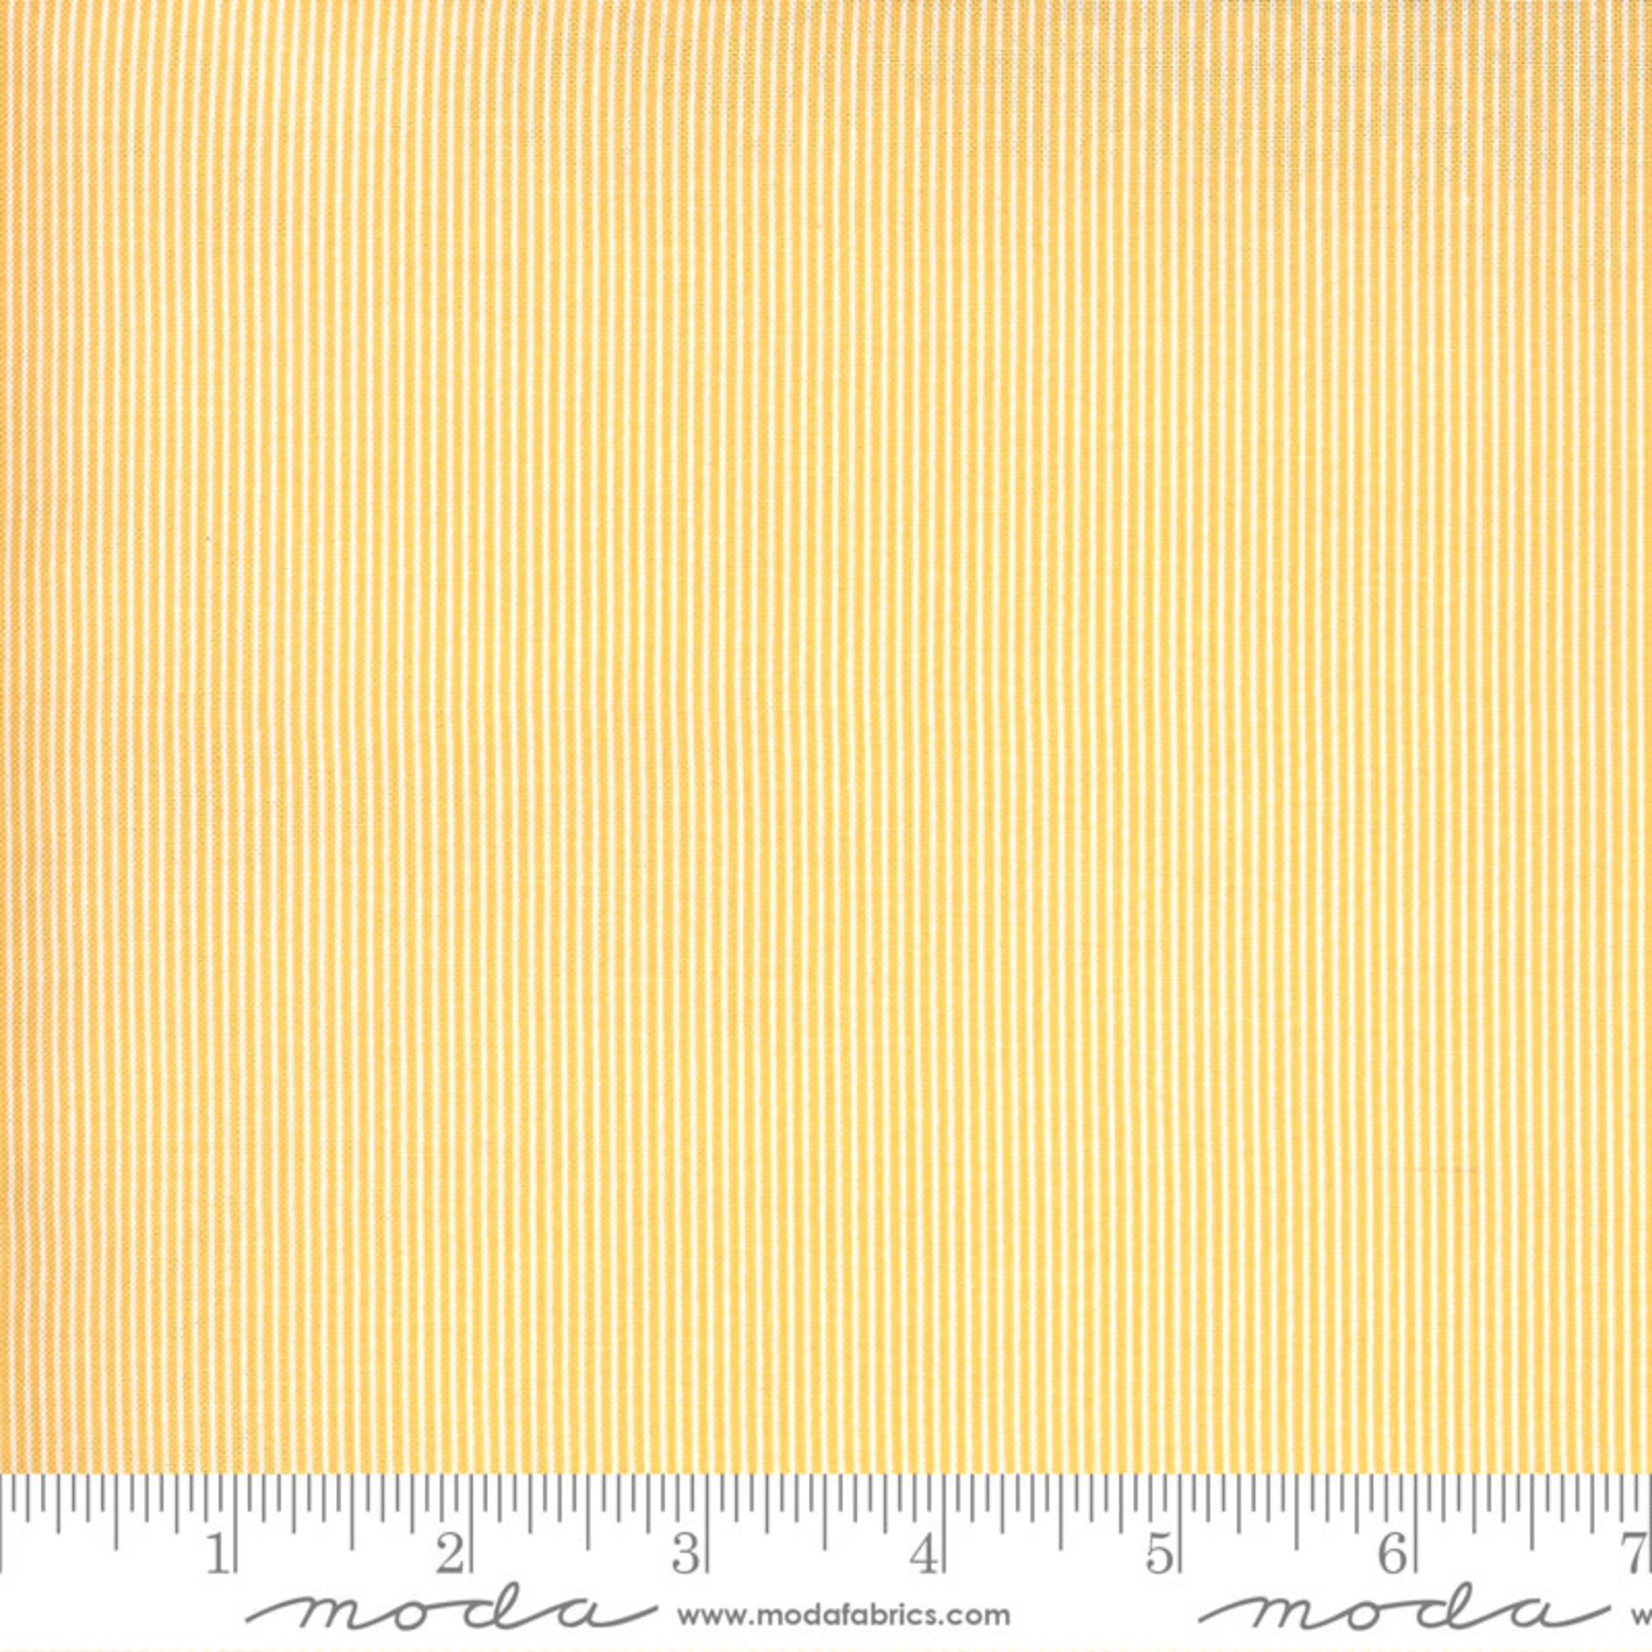 Sweetwater Spring Chicken, Stripe, Yellow 55526-14 $0.20 per cm or $20/m